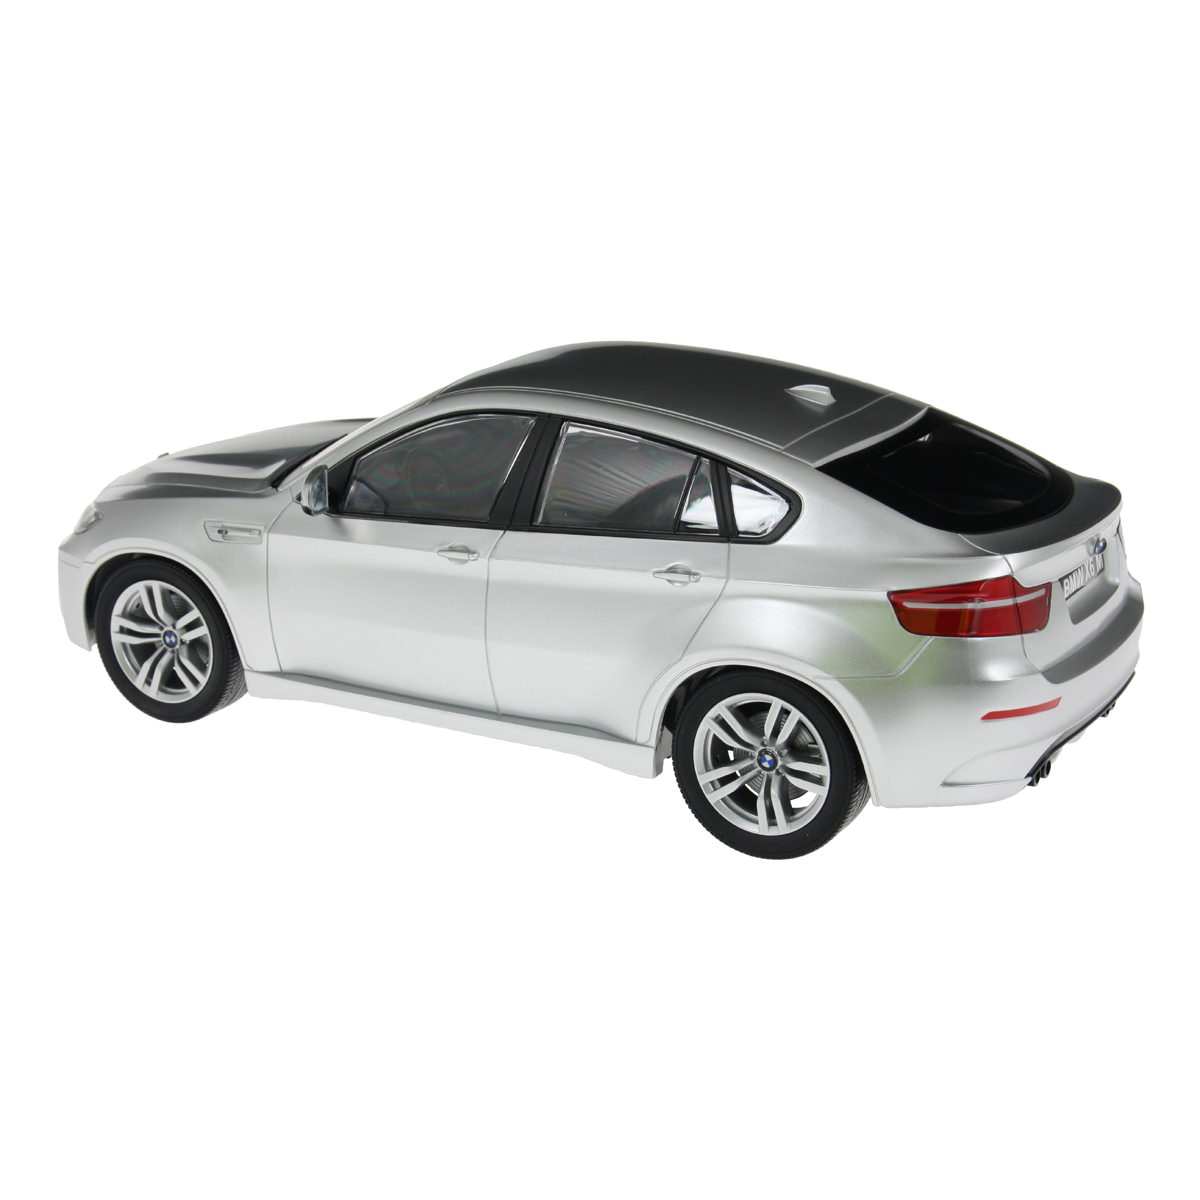 mjx 8541b silver bmw x6 m edition rc car at hobby warehouse. Black Bedroom Furniture Sets. Home Design Ideas